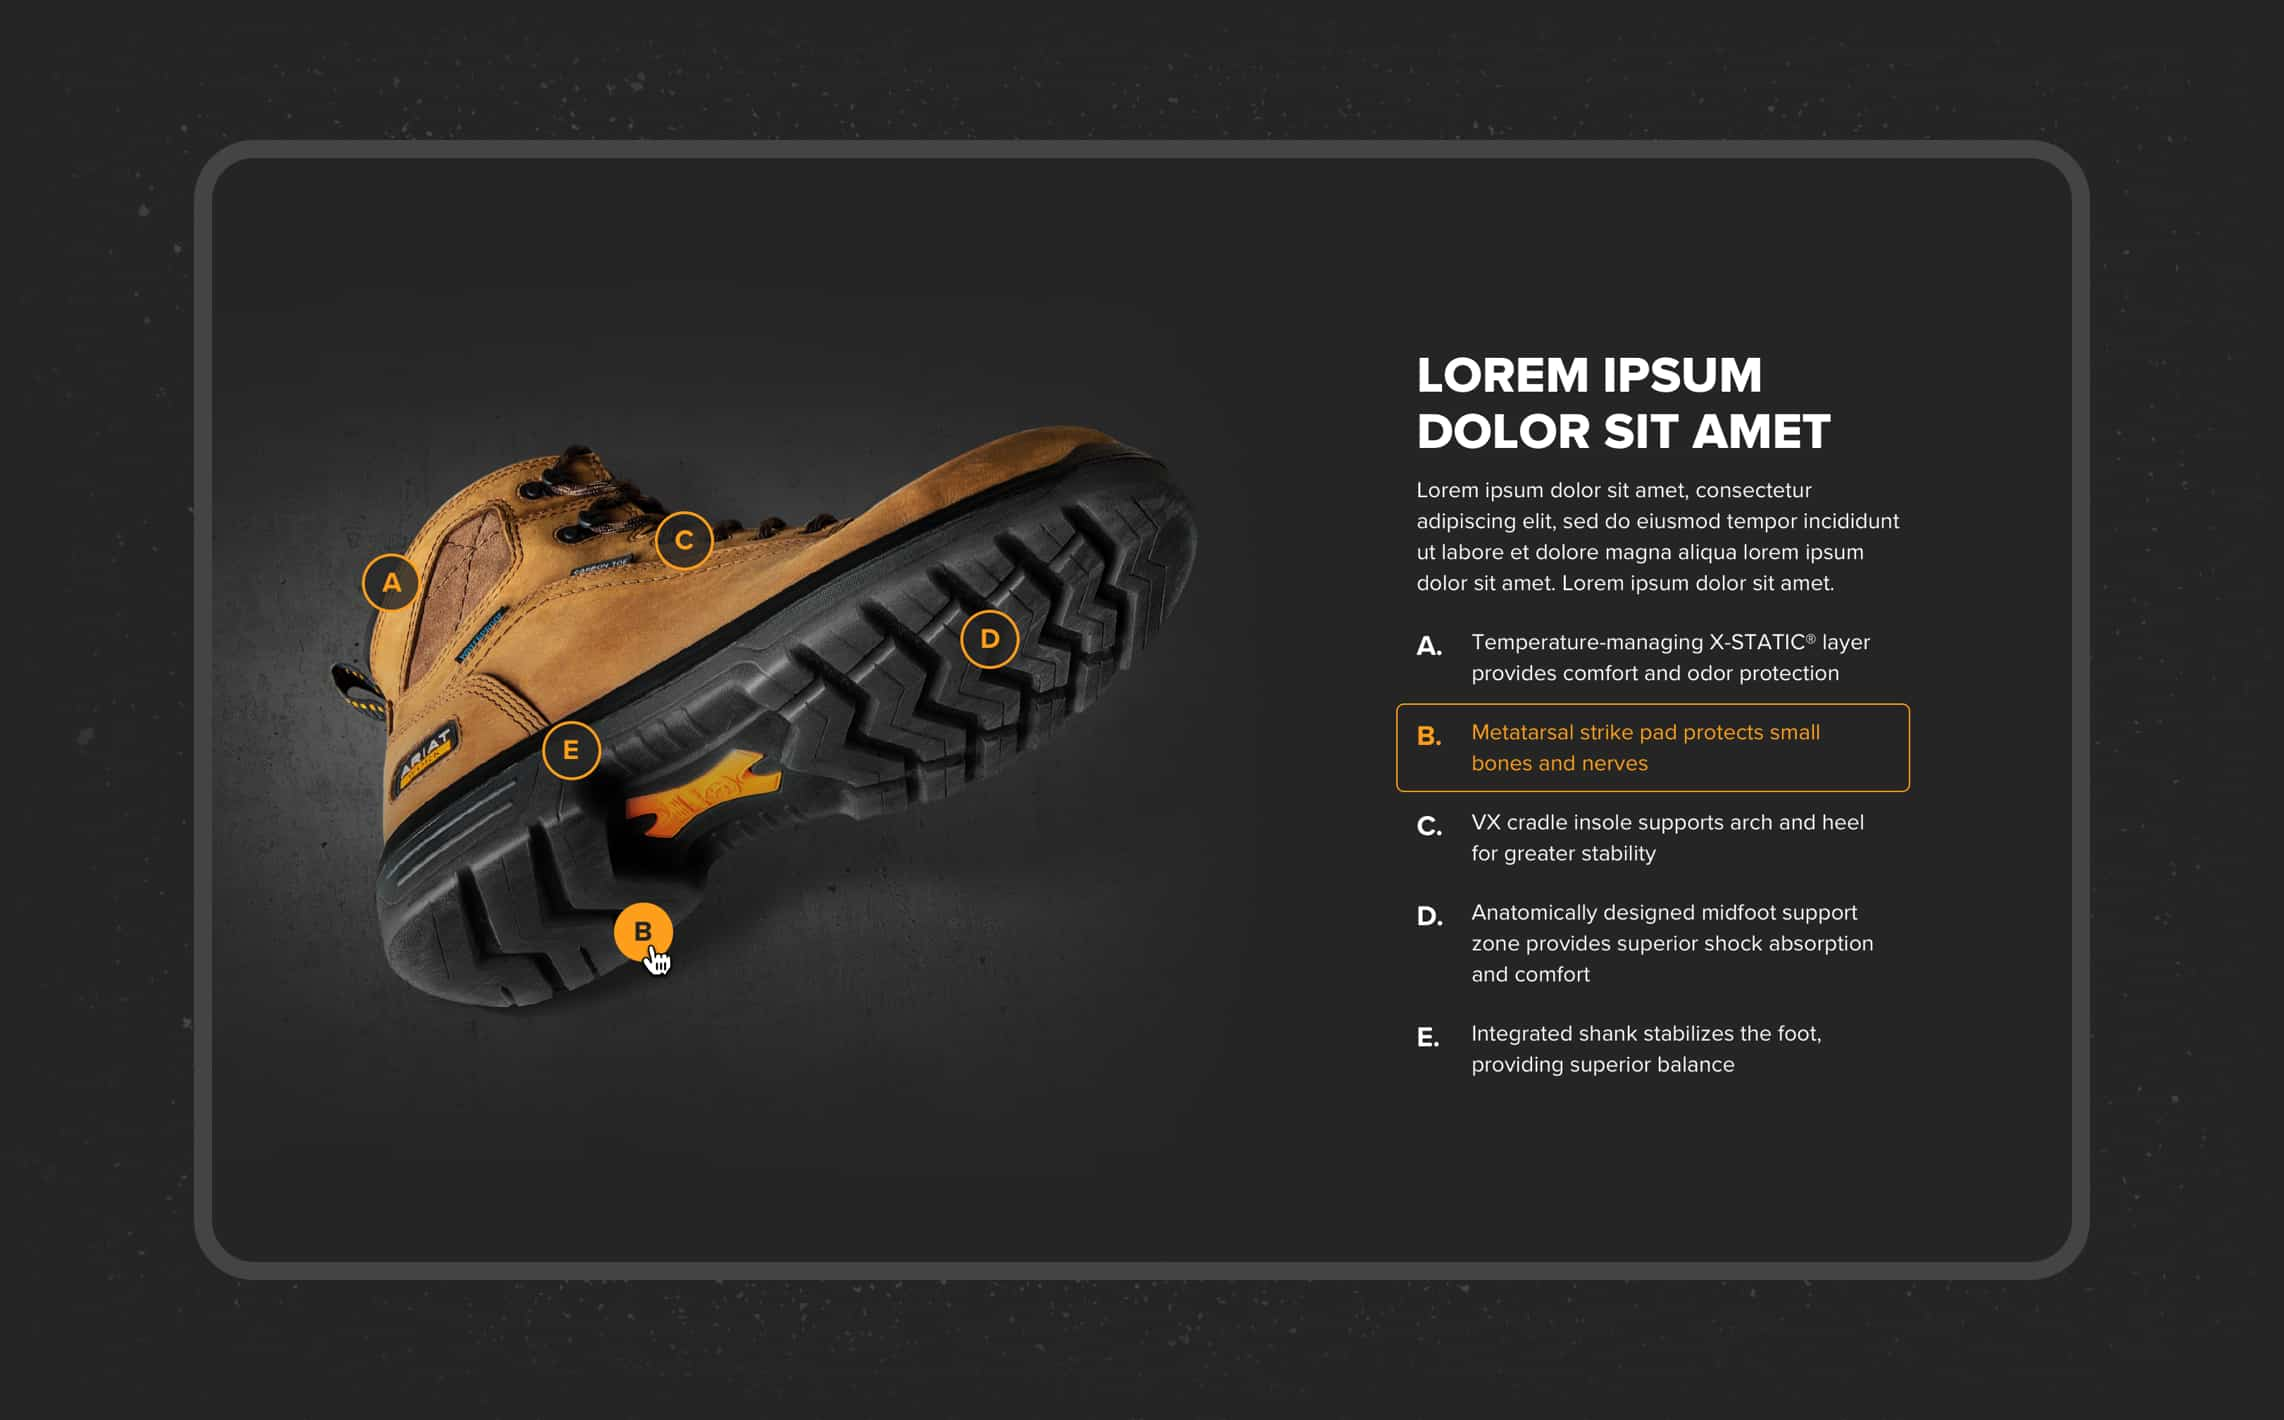 Screenshot showing interactive panel on Ariat website used to explain the technology behind their boots.